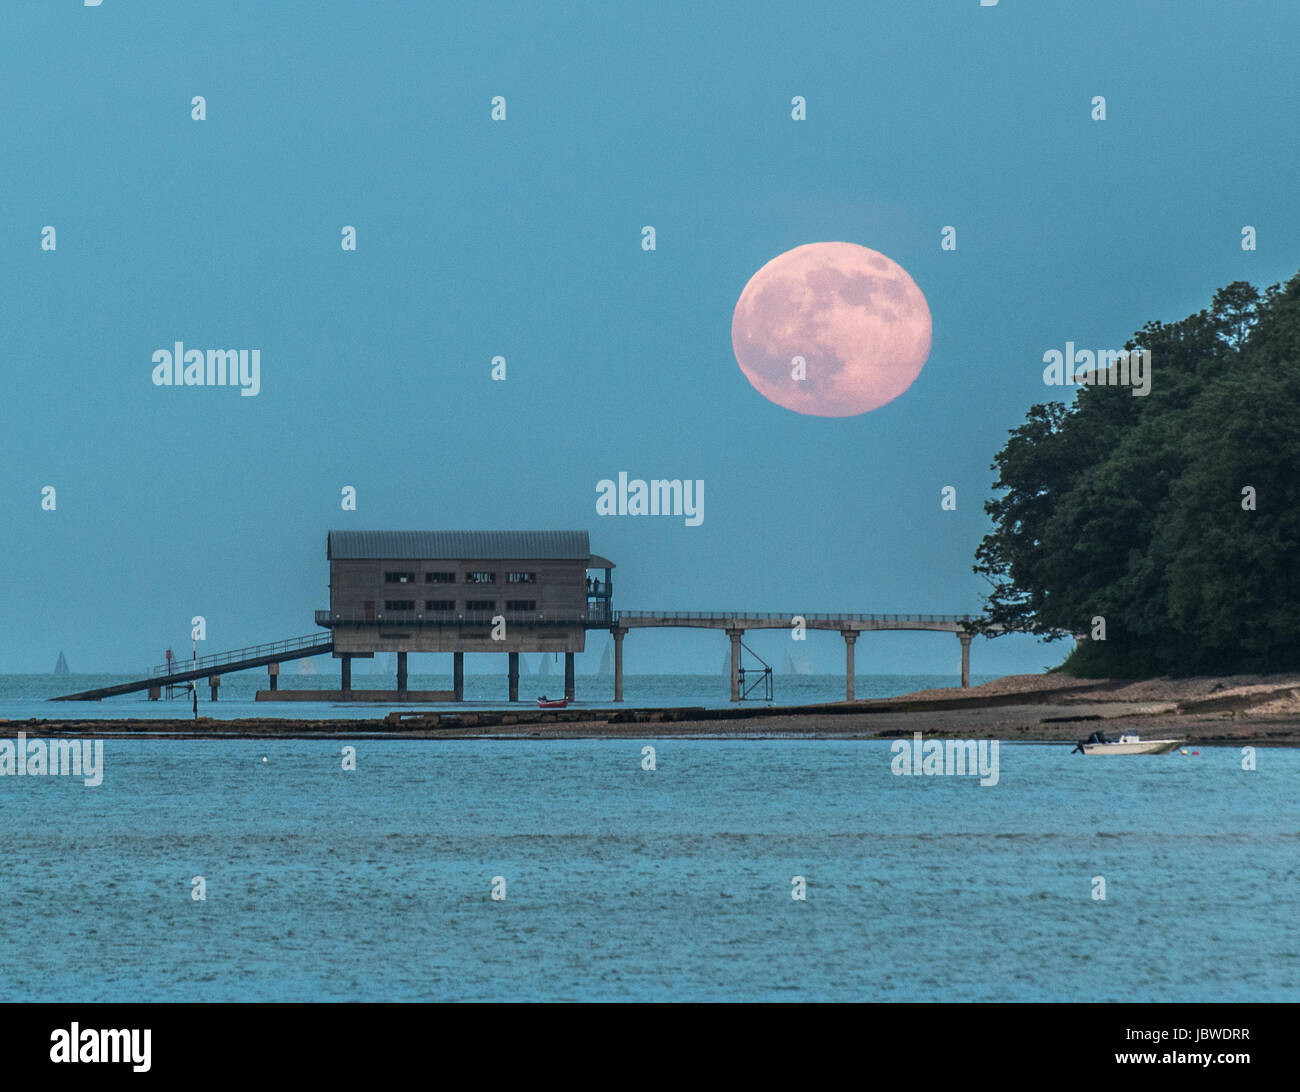 Full moon rising over Bembridge pier and lifeboat station - Stock Image